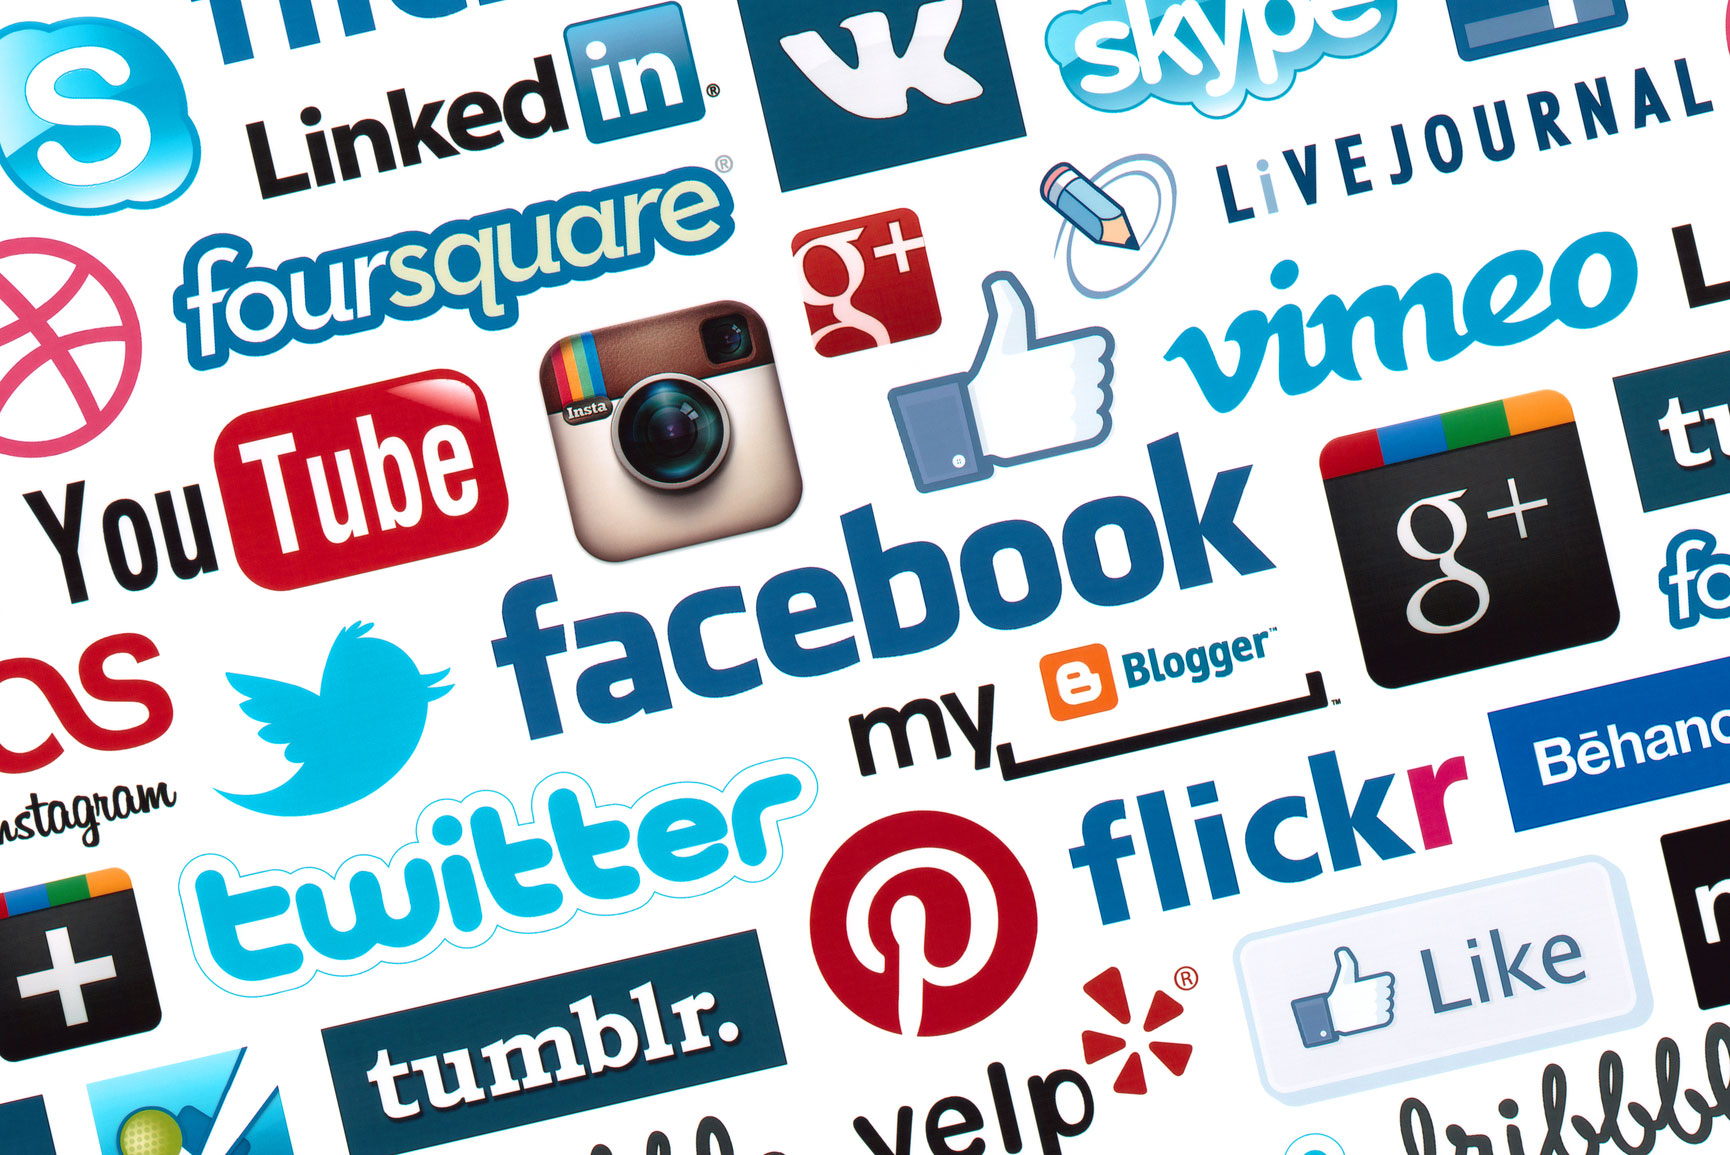 More than half of users use mobile devices to access social networks on a daily basis